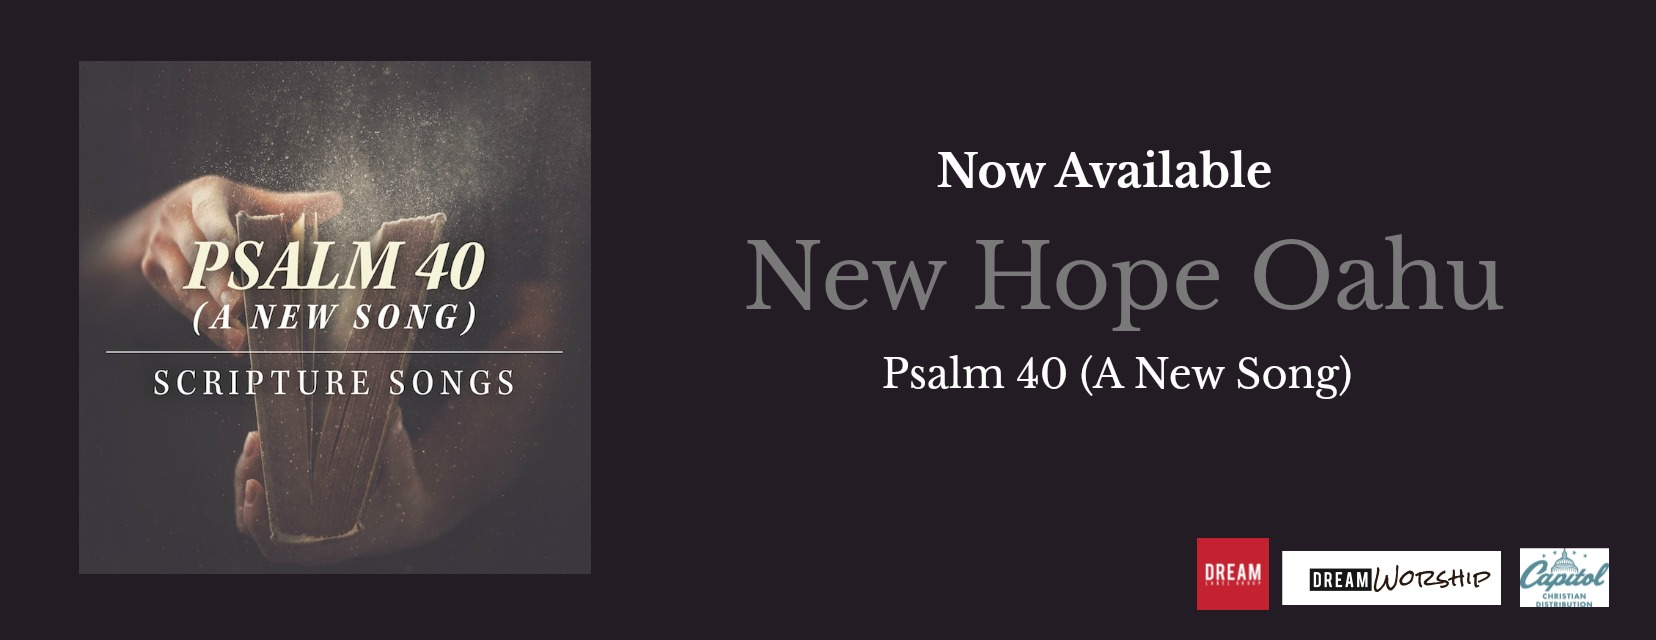 New New Hope Oahu Single - Psalm 40 (A New Song)